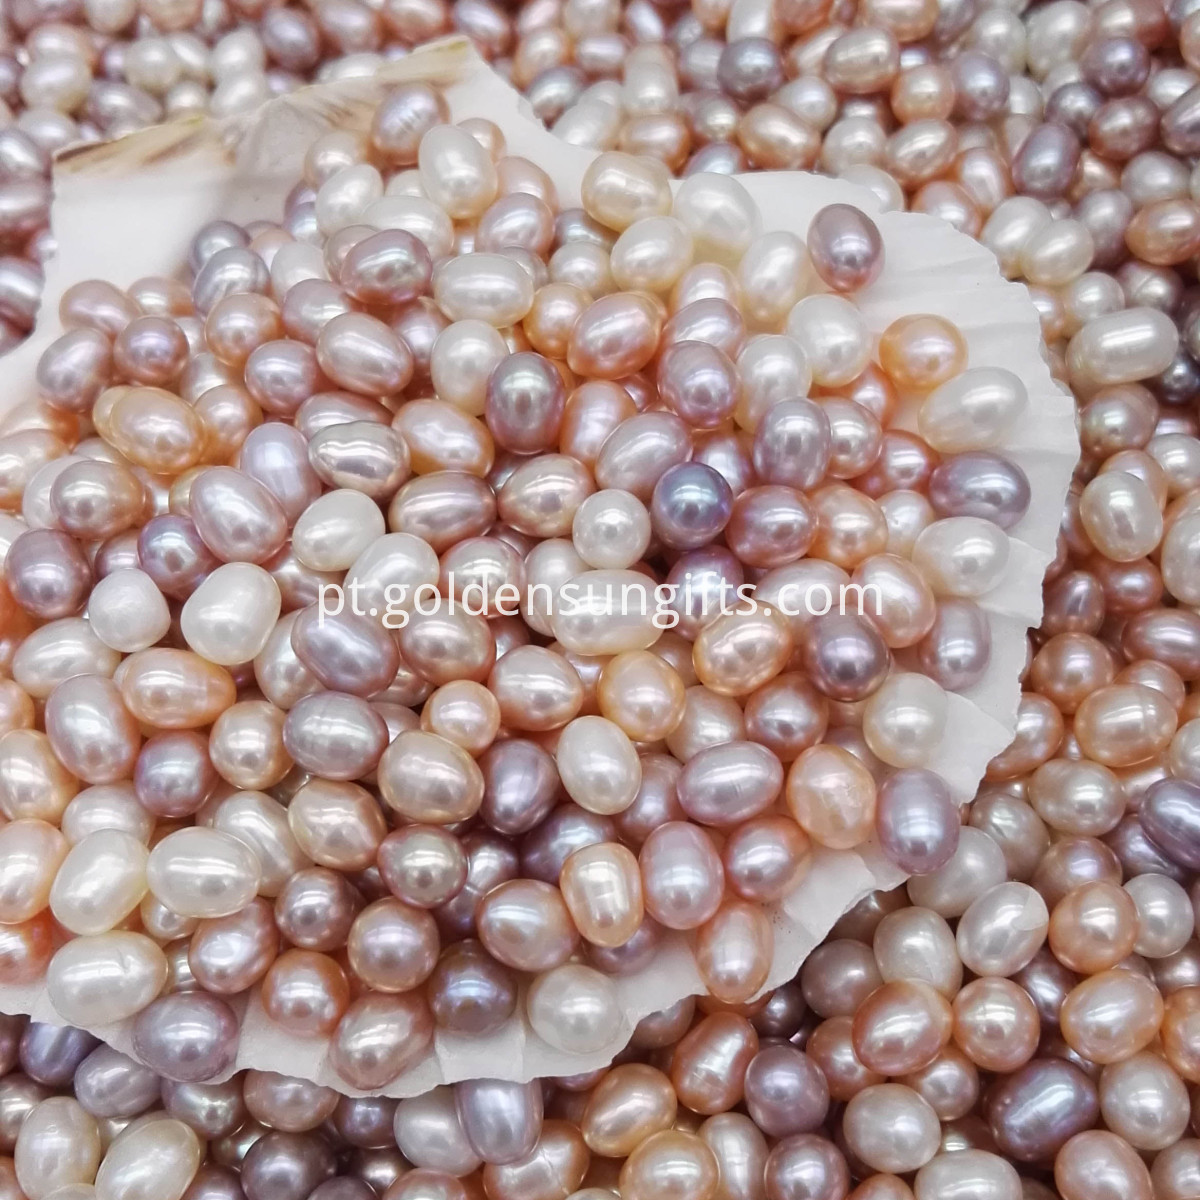 Real Freshwater Pearl Beads